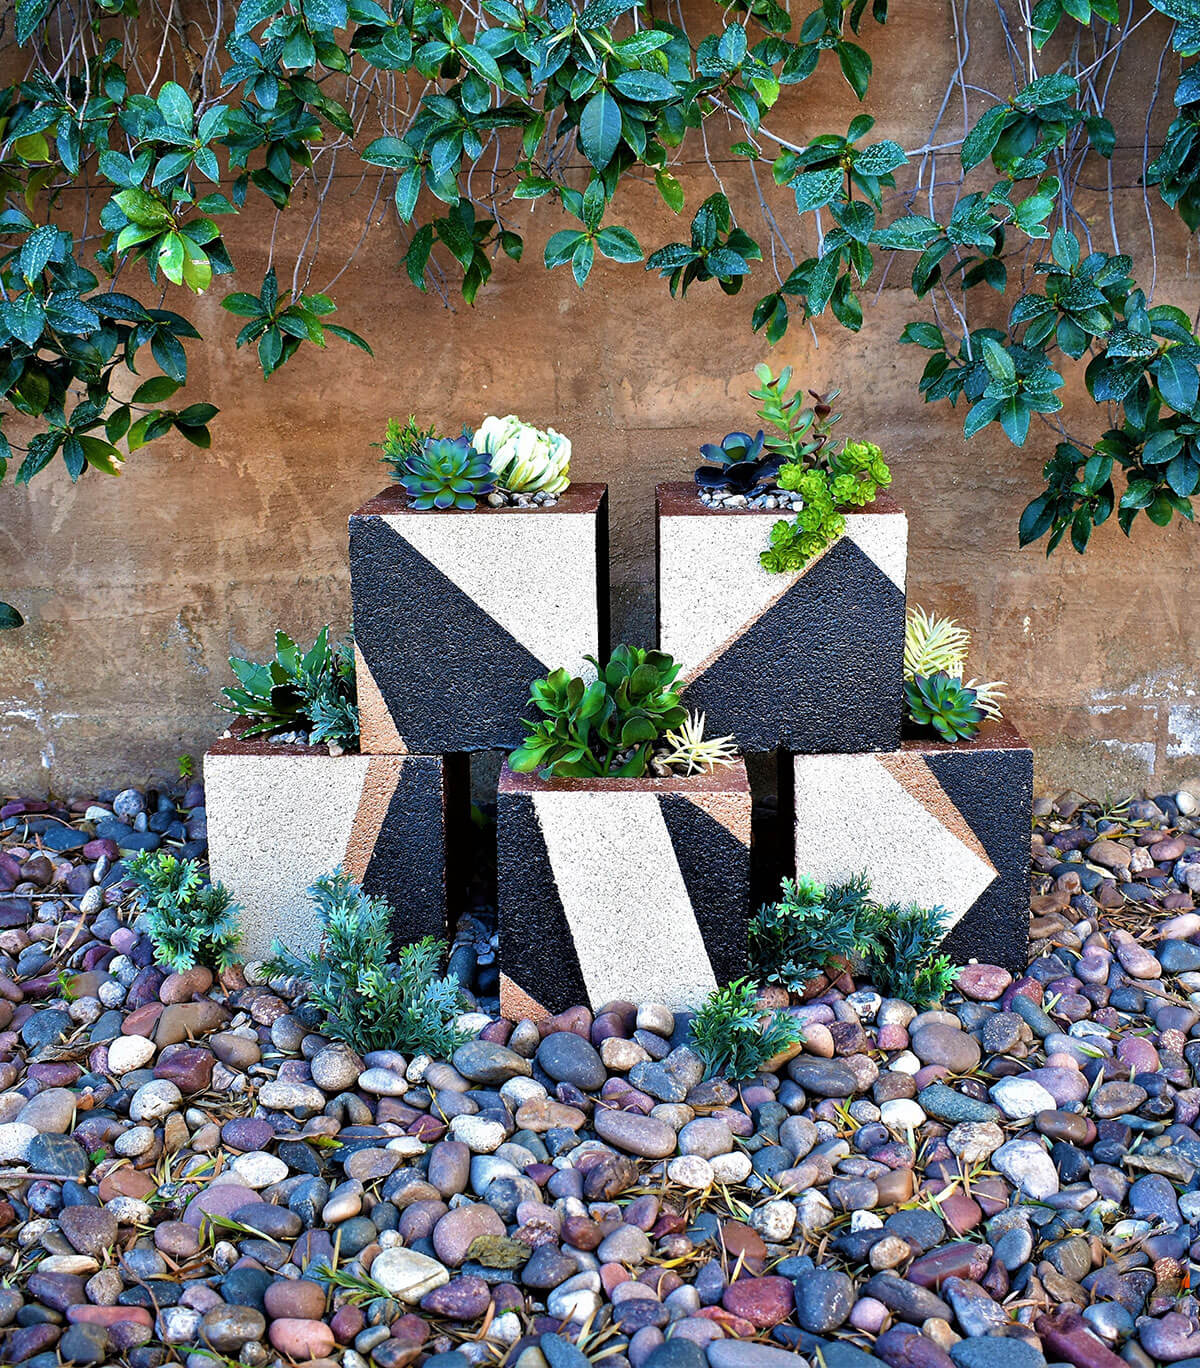 Square Planters in Geometric Design